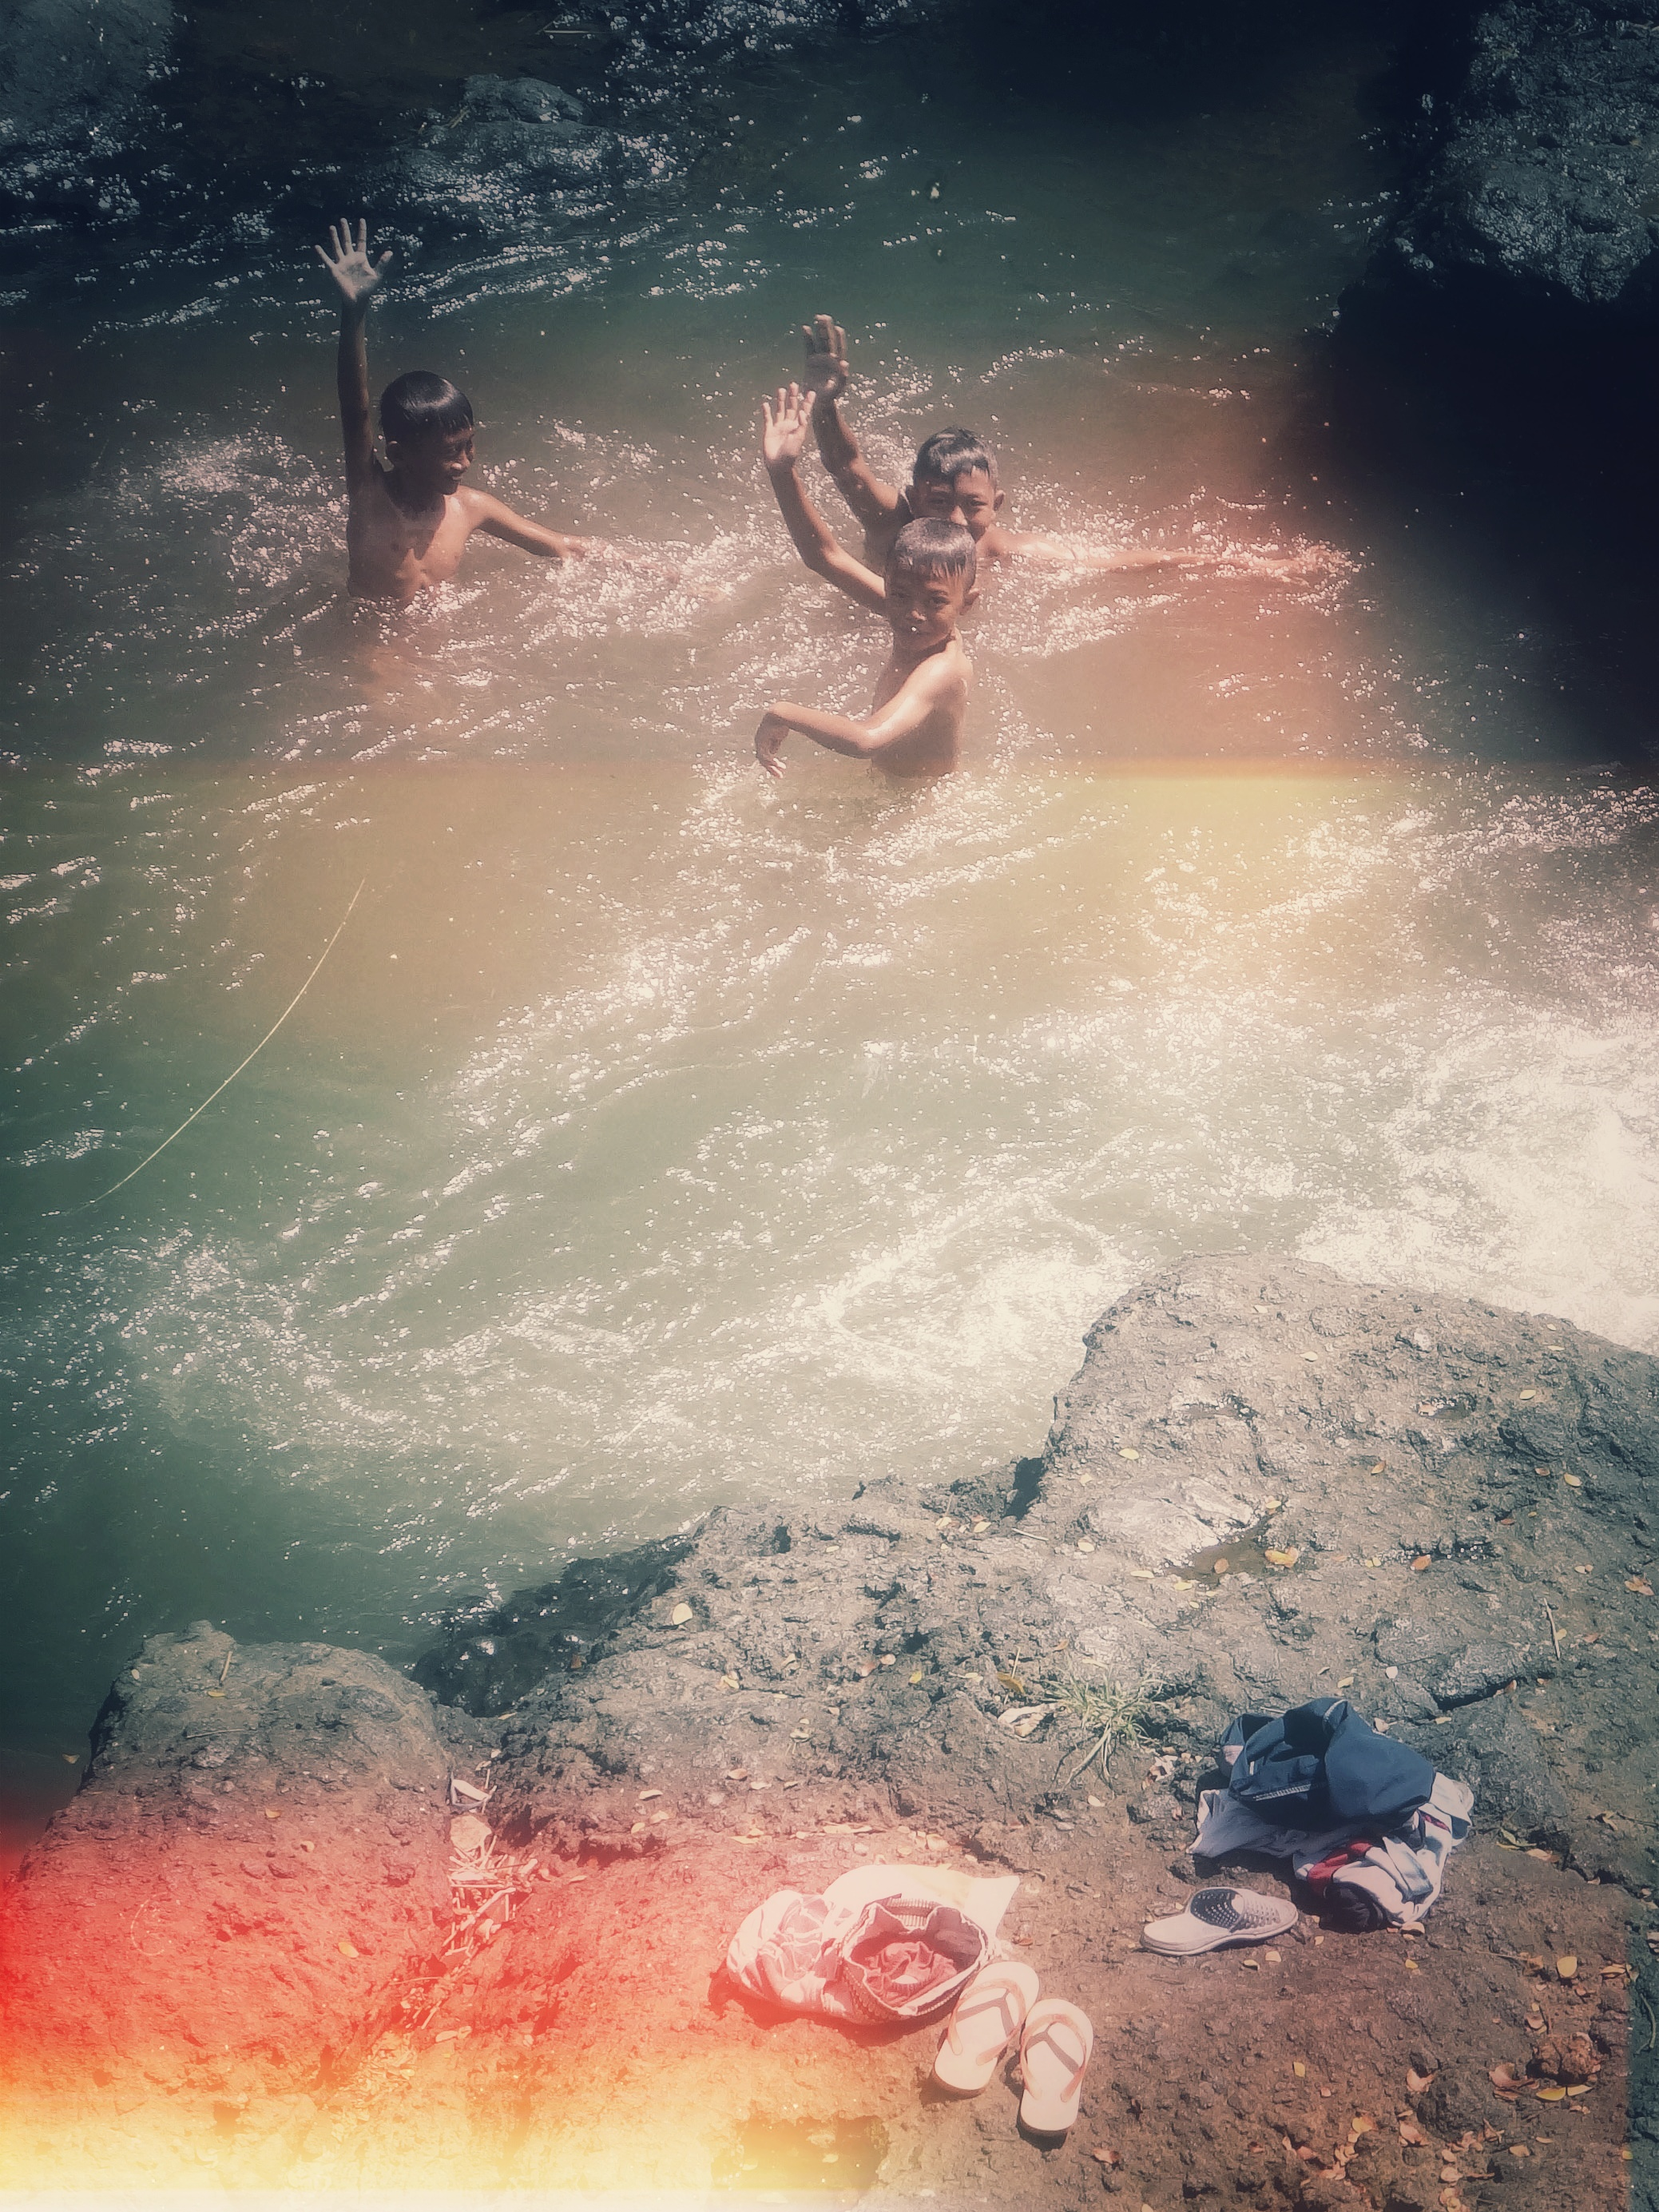 Boys bathing in a river, Java, Indonesia